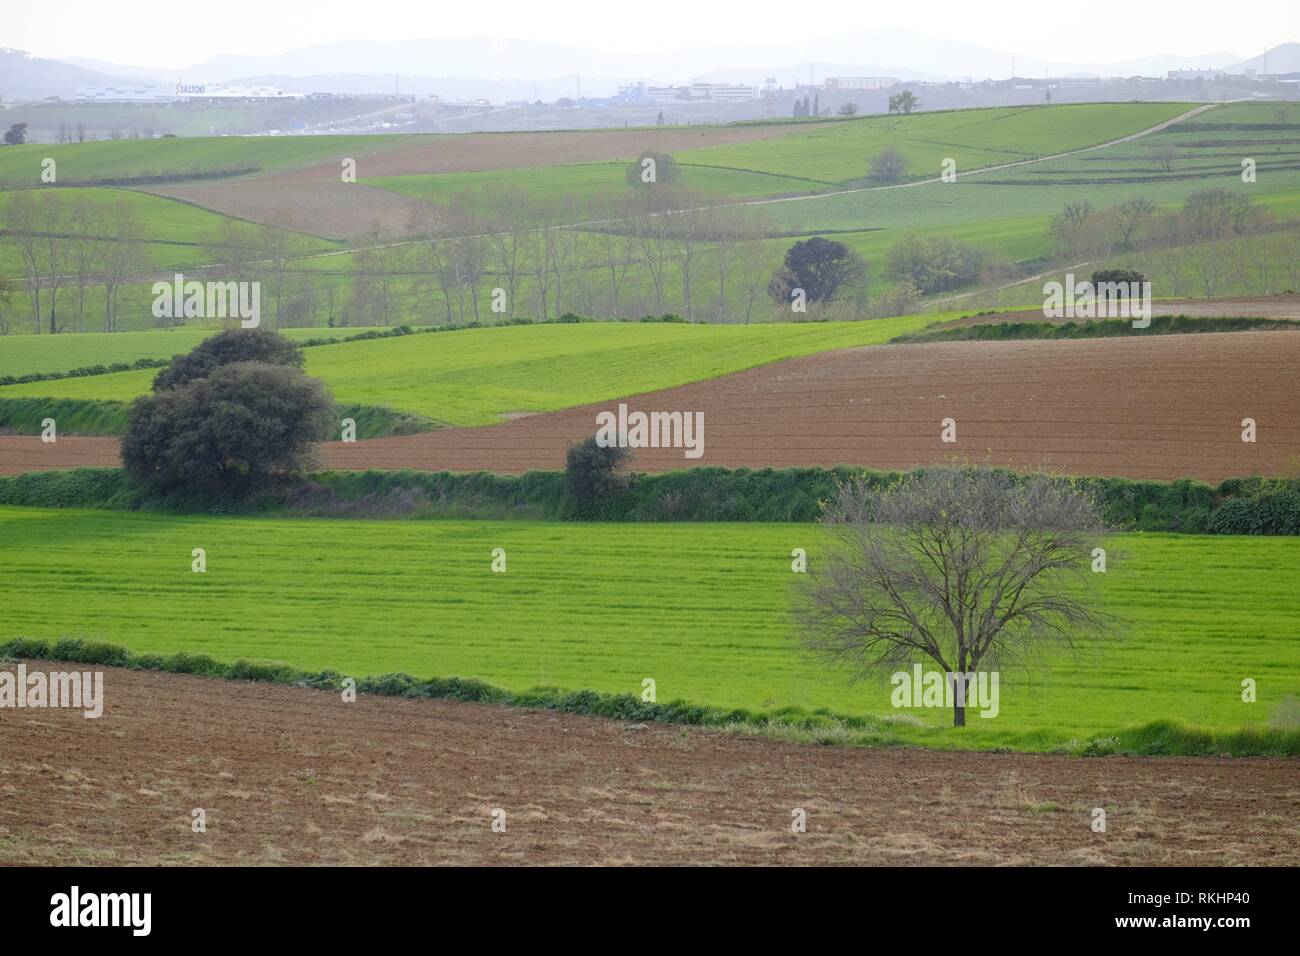 Greenfield and hill in Mollet del Valles in Barcelona province in Catalonia Spain. - Stock Image